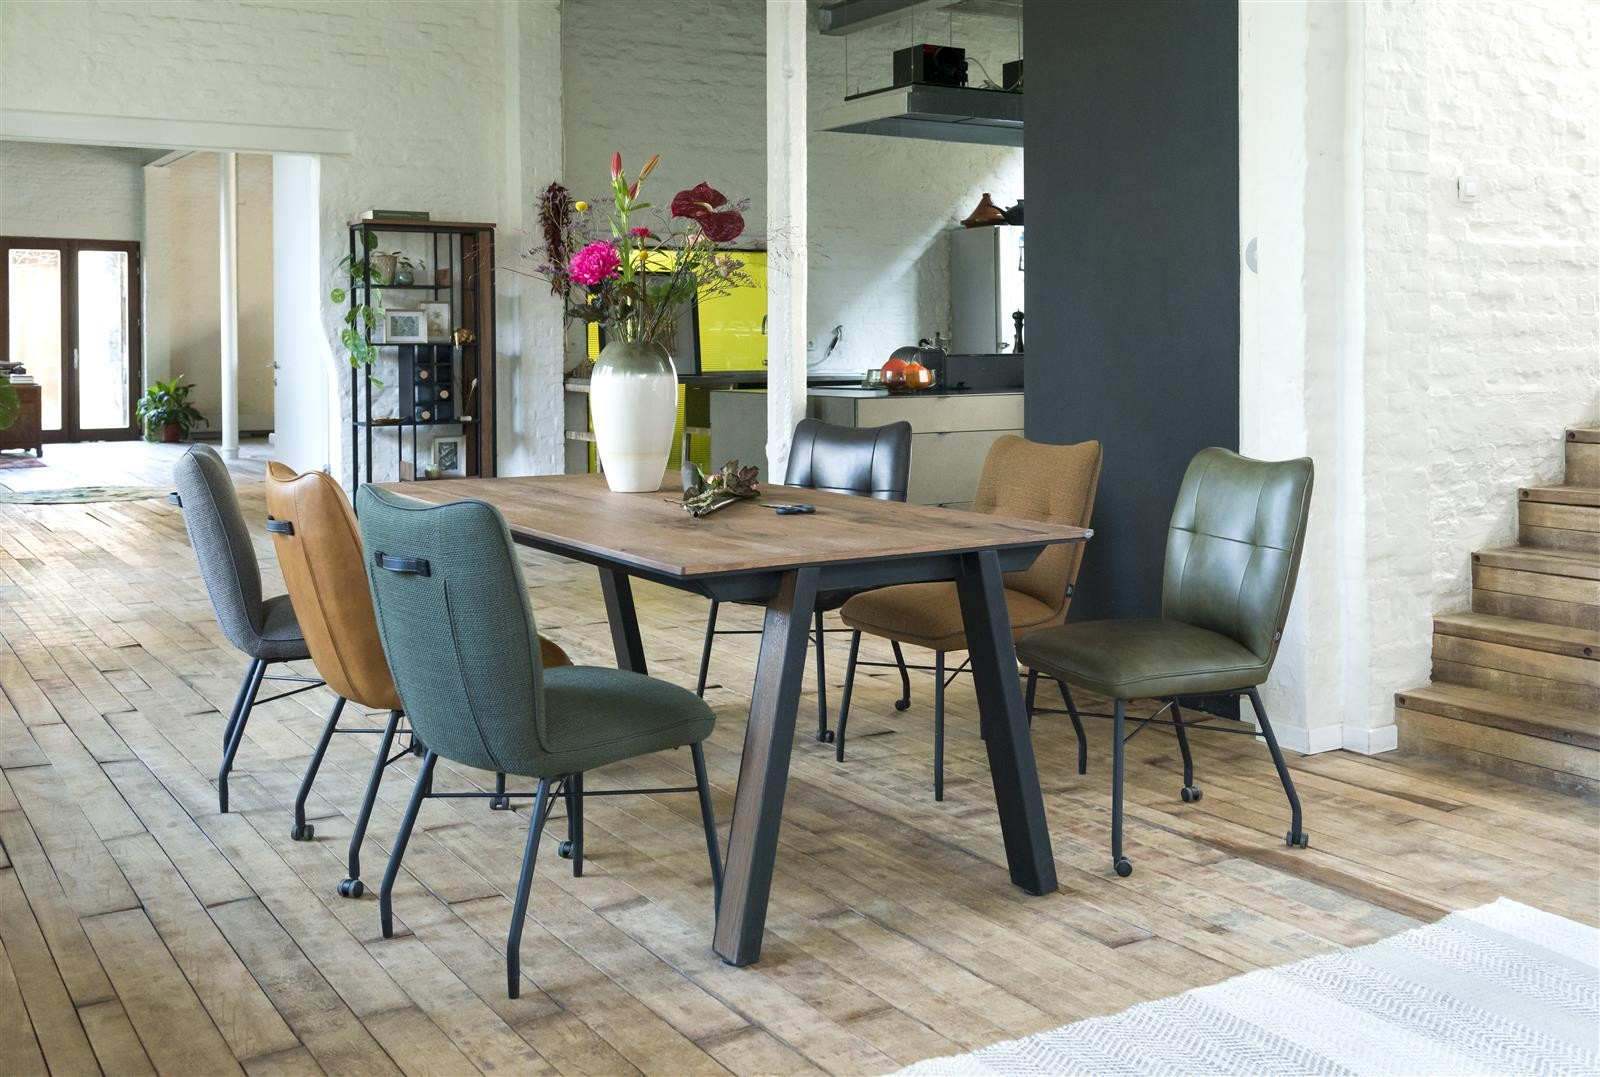 Chiara Dining Chair Wheels Leather, Dining Room Chairs With Wheels